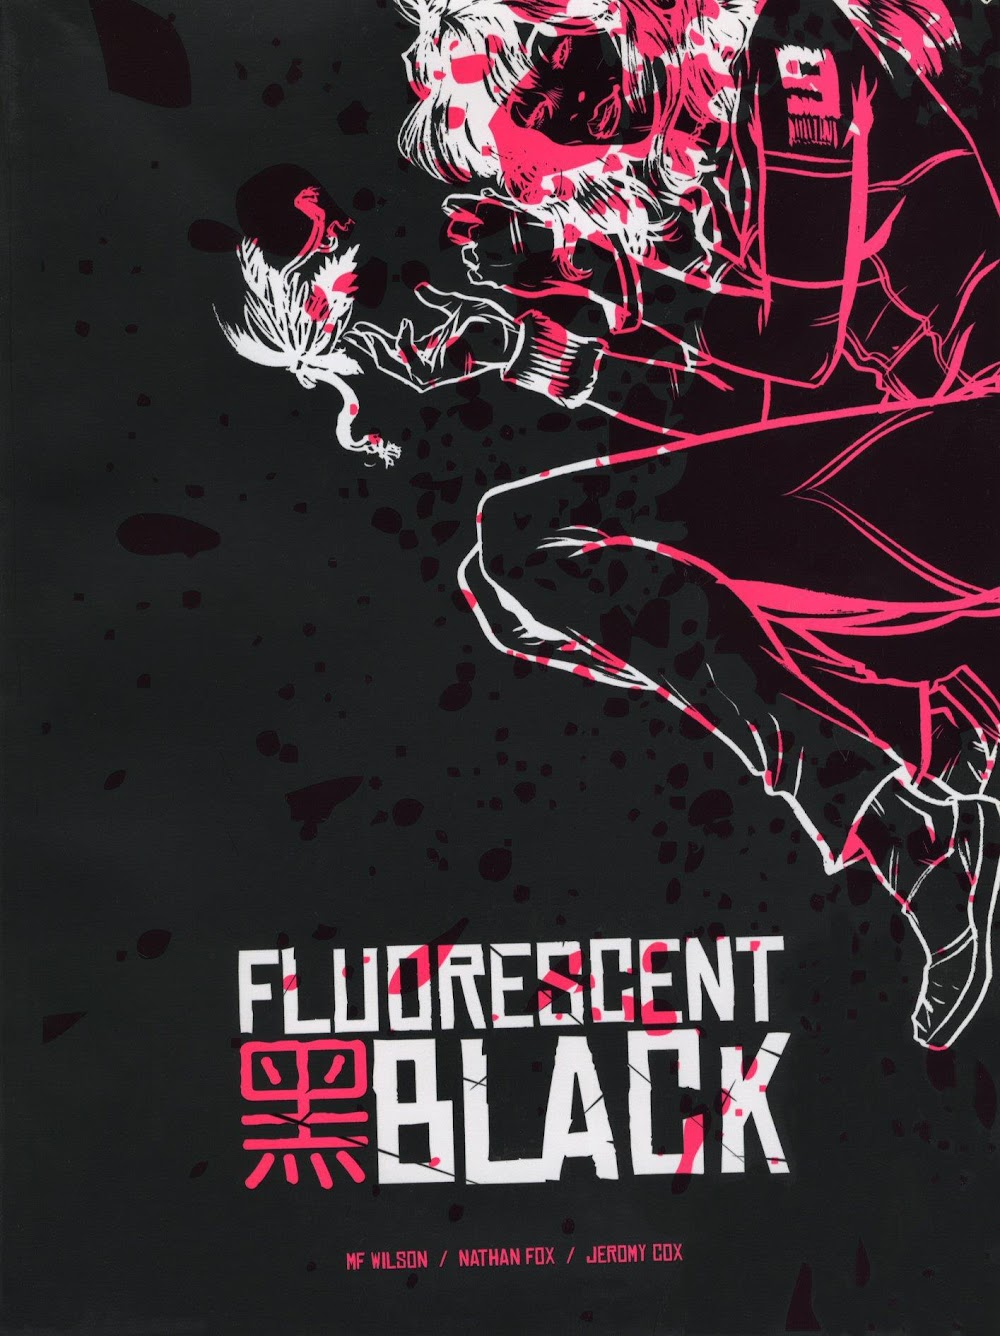 Flourescent Black (2010)